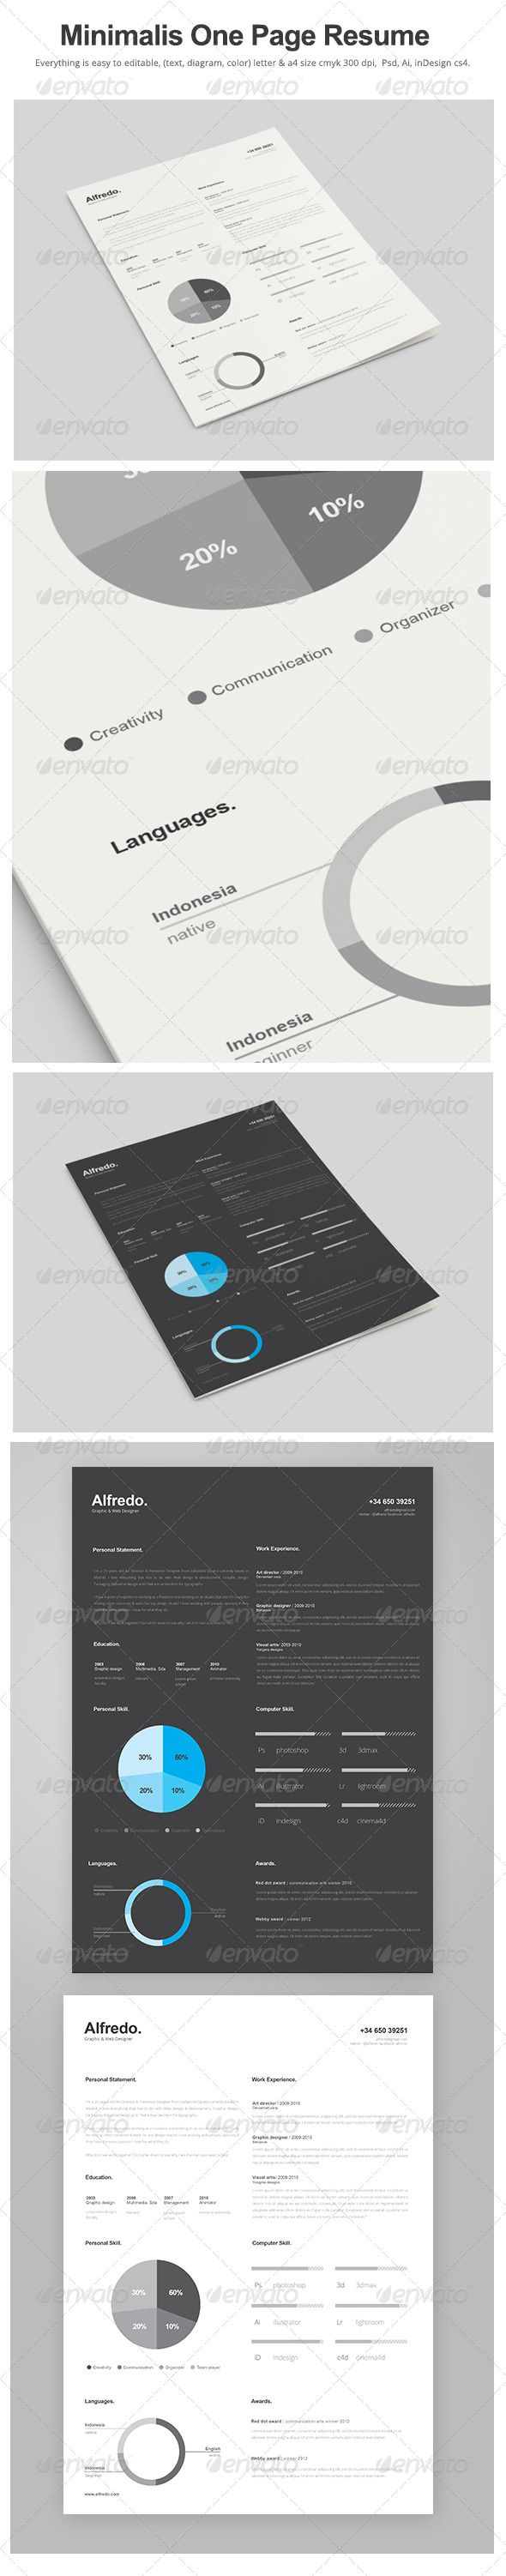 military resume format%0A Minimalist One Page Resume